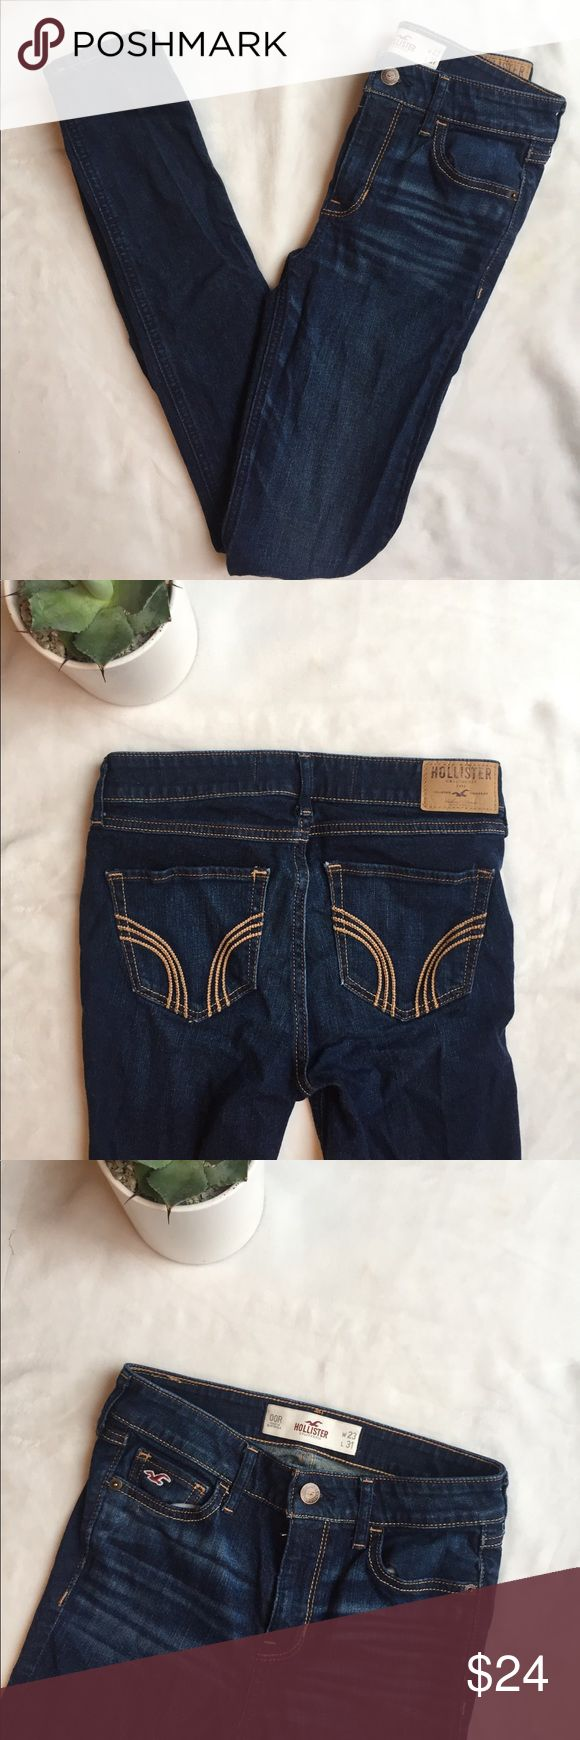 """HOLLISTER SKINNY JEANS 👖 HOLLISTER skinny jeans. Good condition. Size 00R. Made in Guatemala. Waist 13"""" Inseam 30"""" Length 39"""" Hollister Jeans Skinny"""